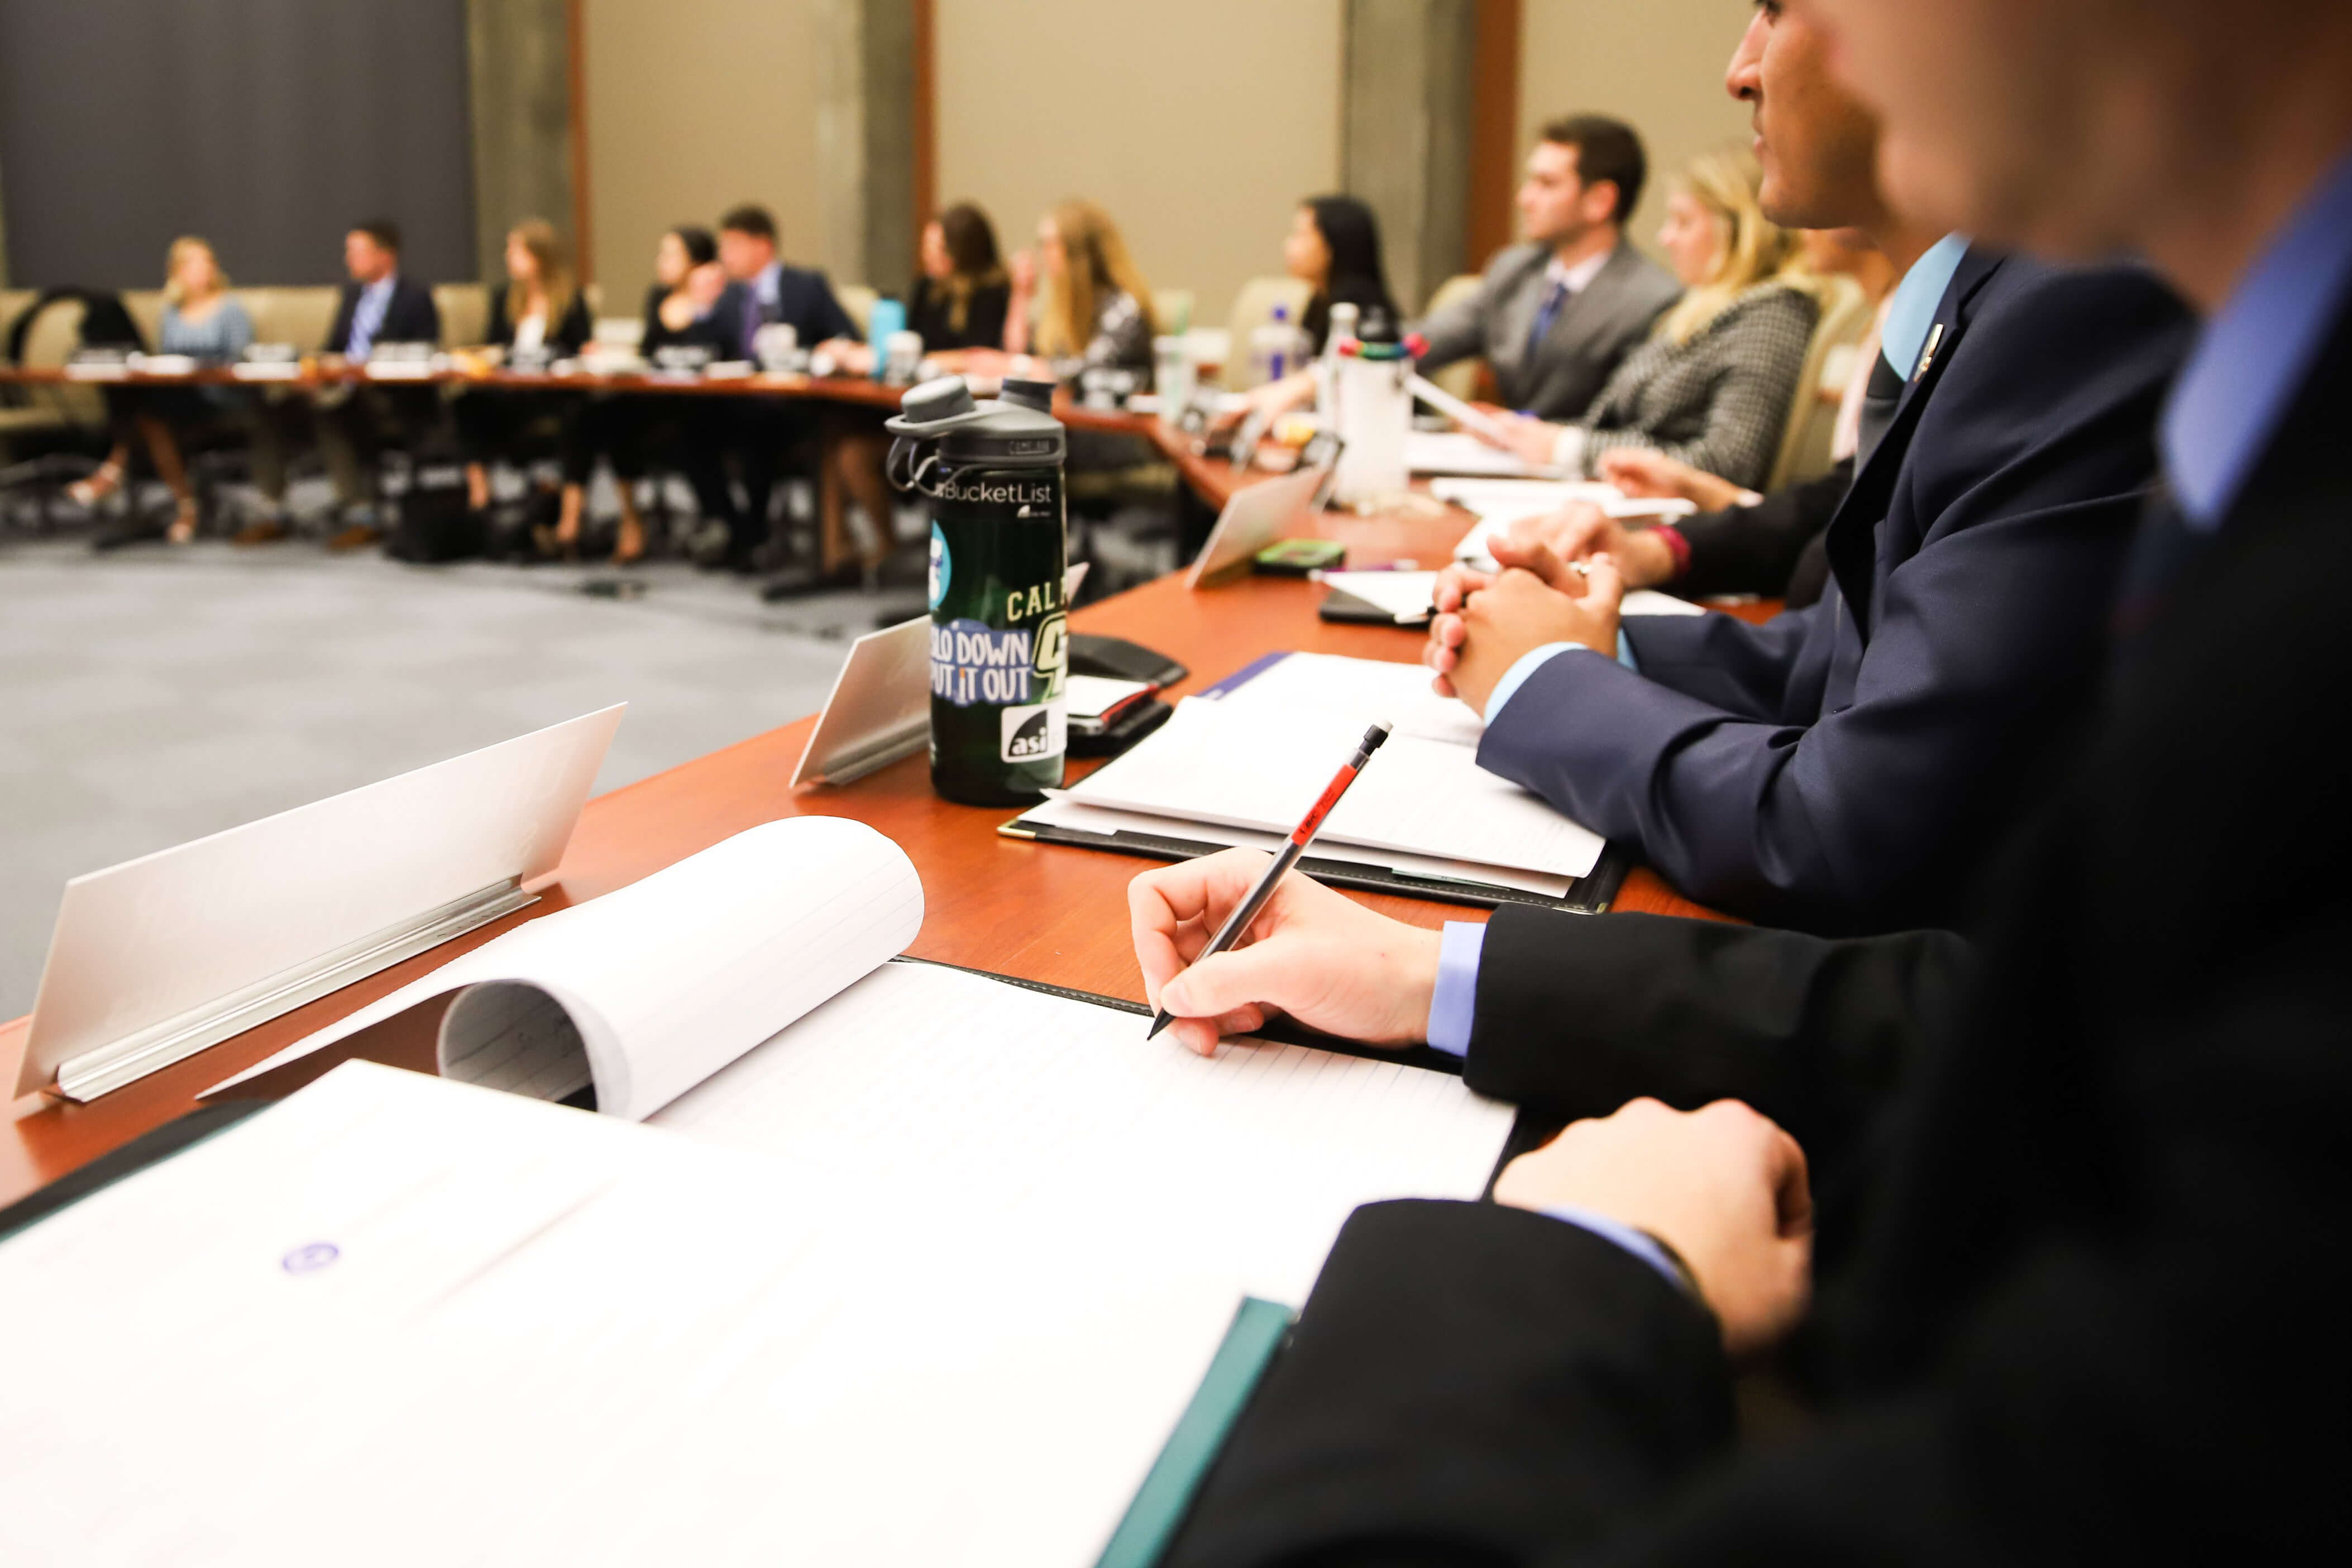 A student takes notes while others listen during a meeting